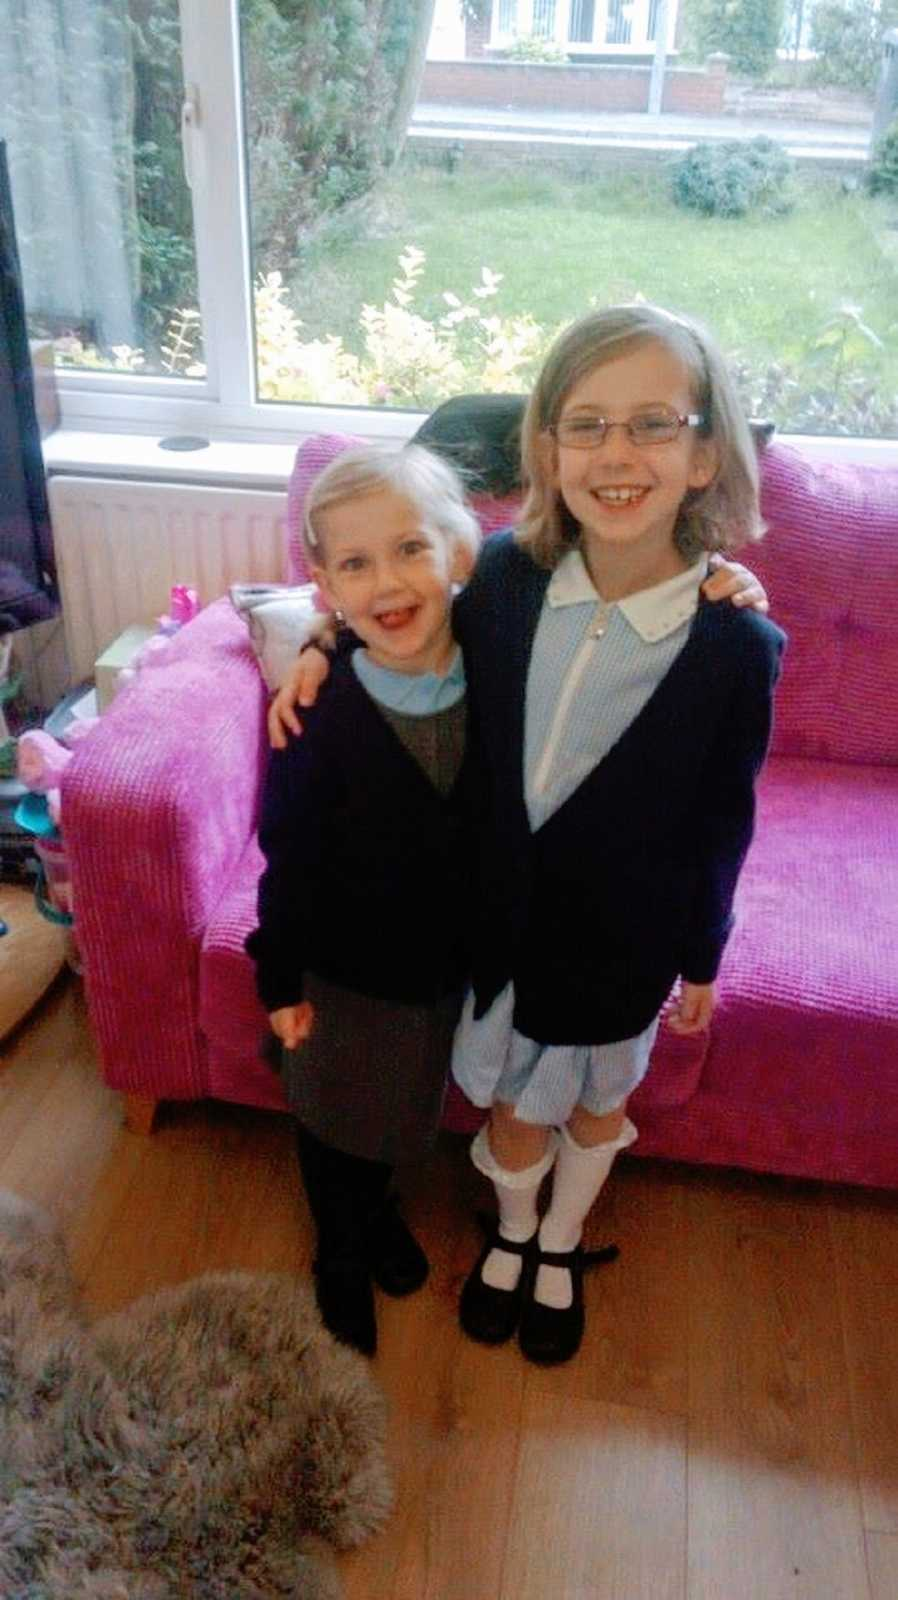 A pair of siblings stand together wearing school uniforms